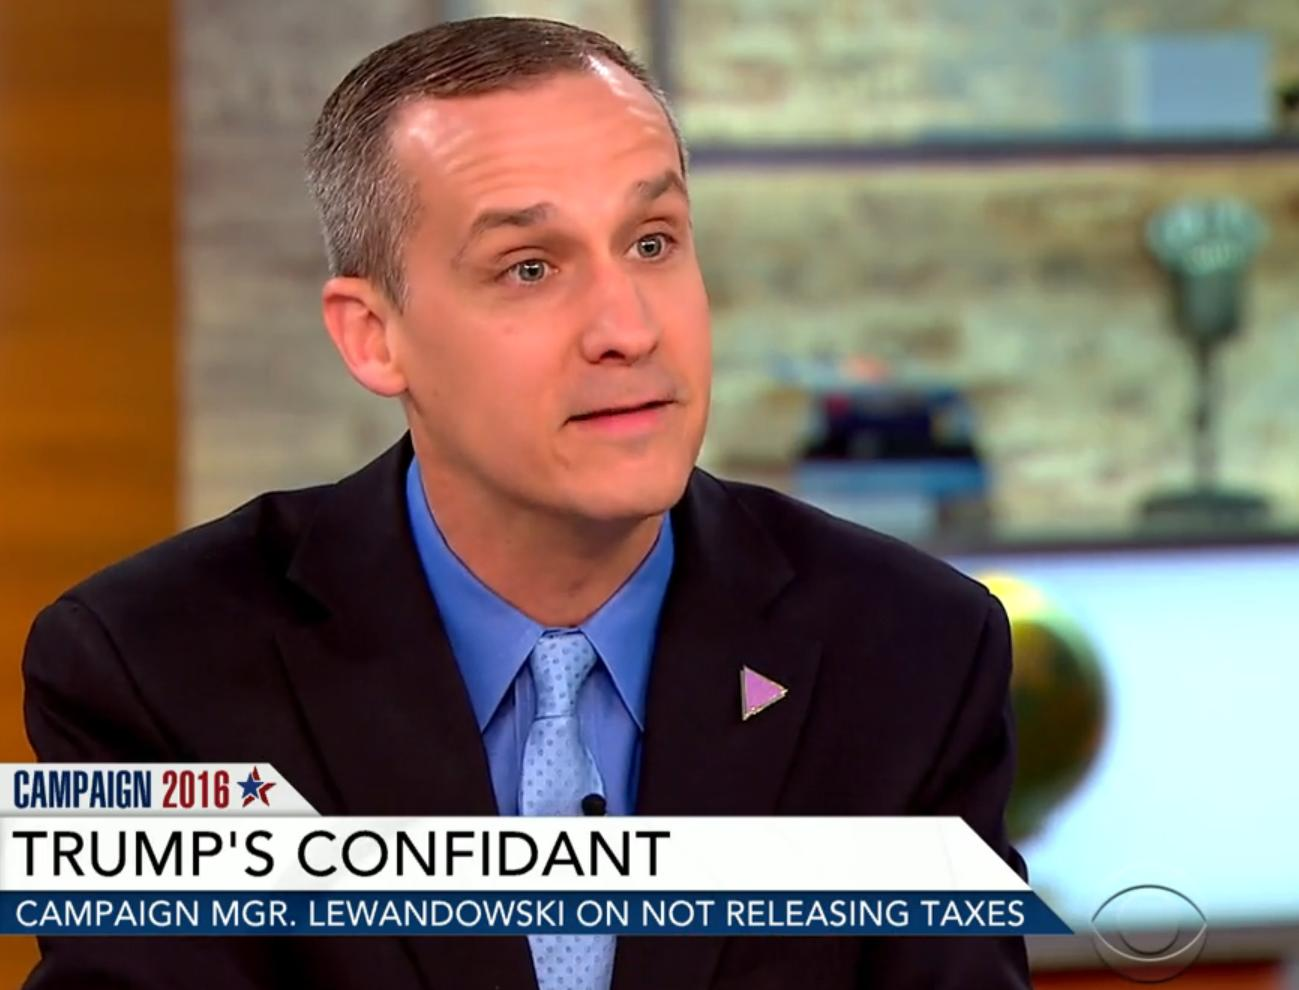 'The question is transparency': Trump campaign manager spars with CBS anchors over Trump's tax returns